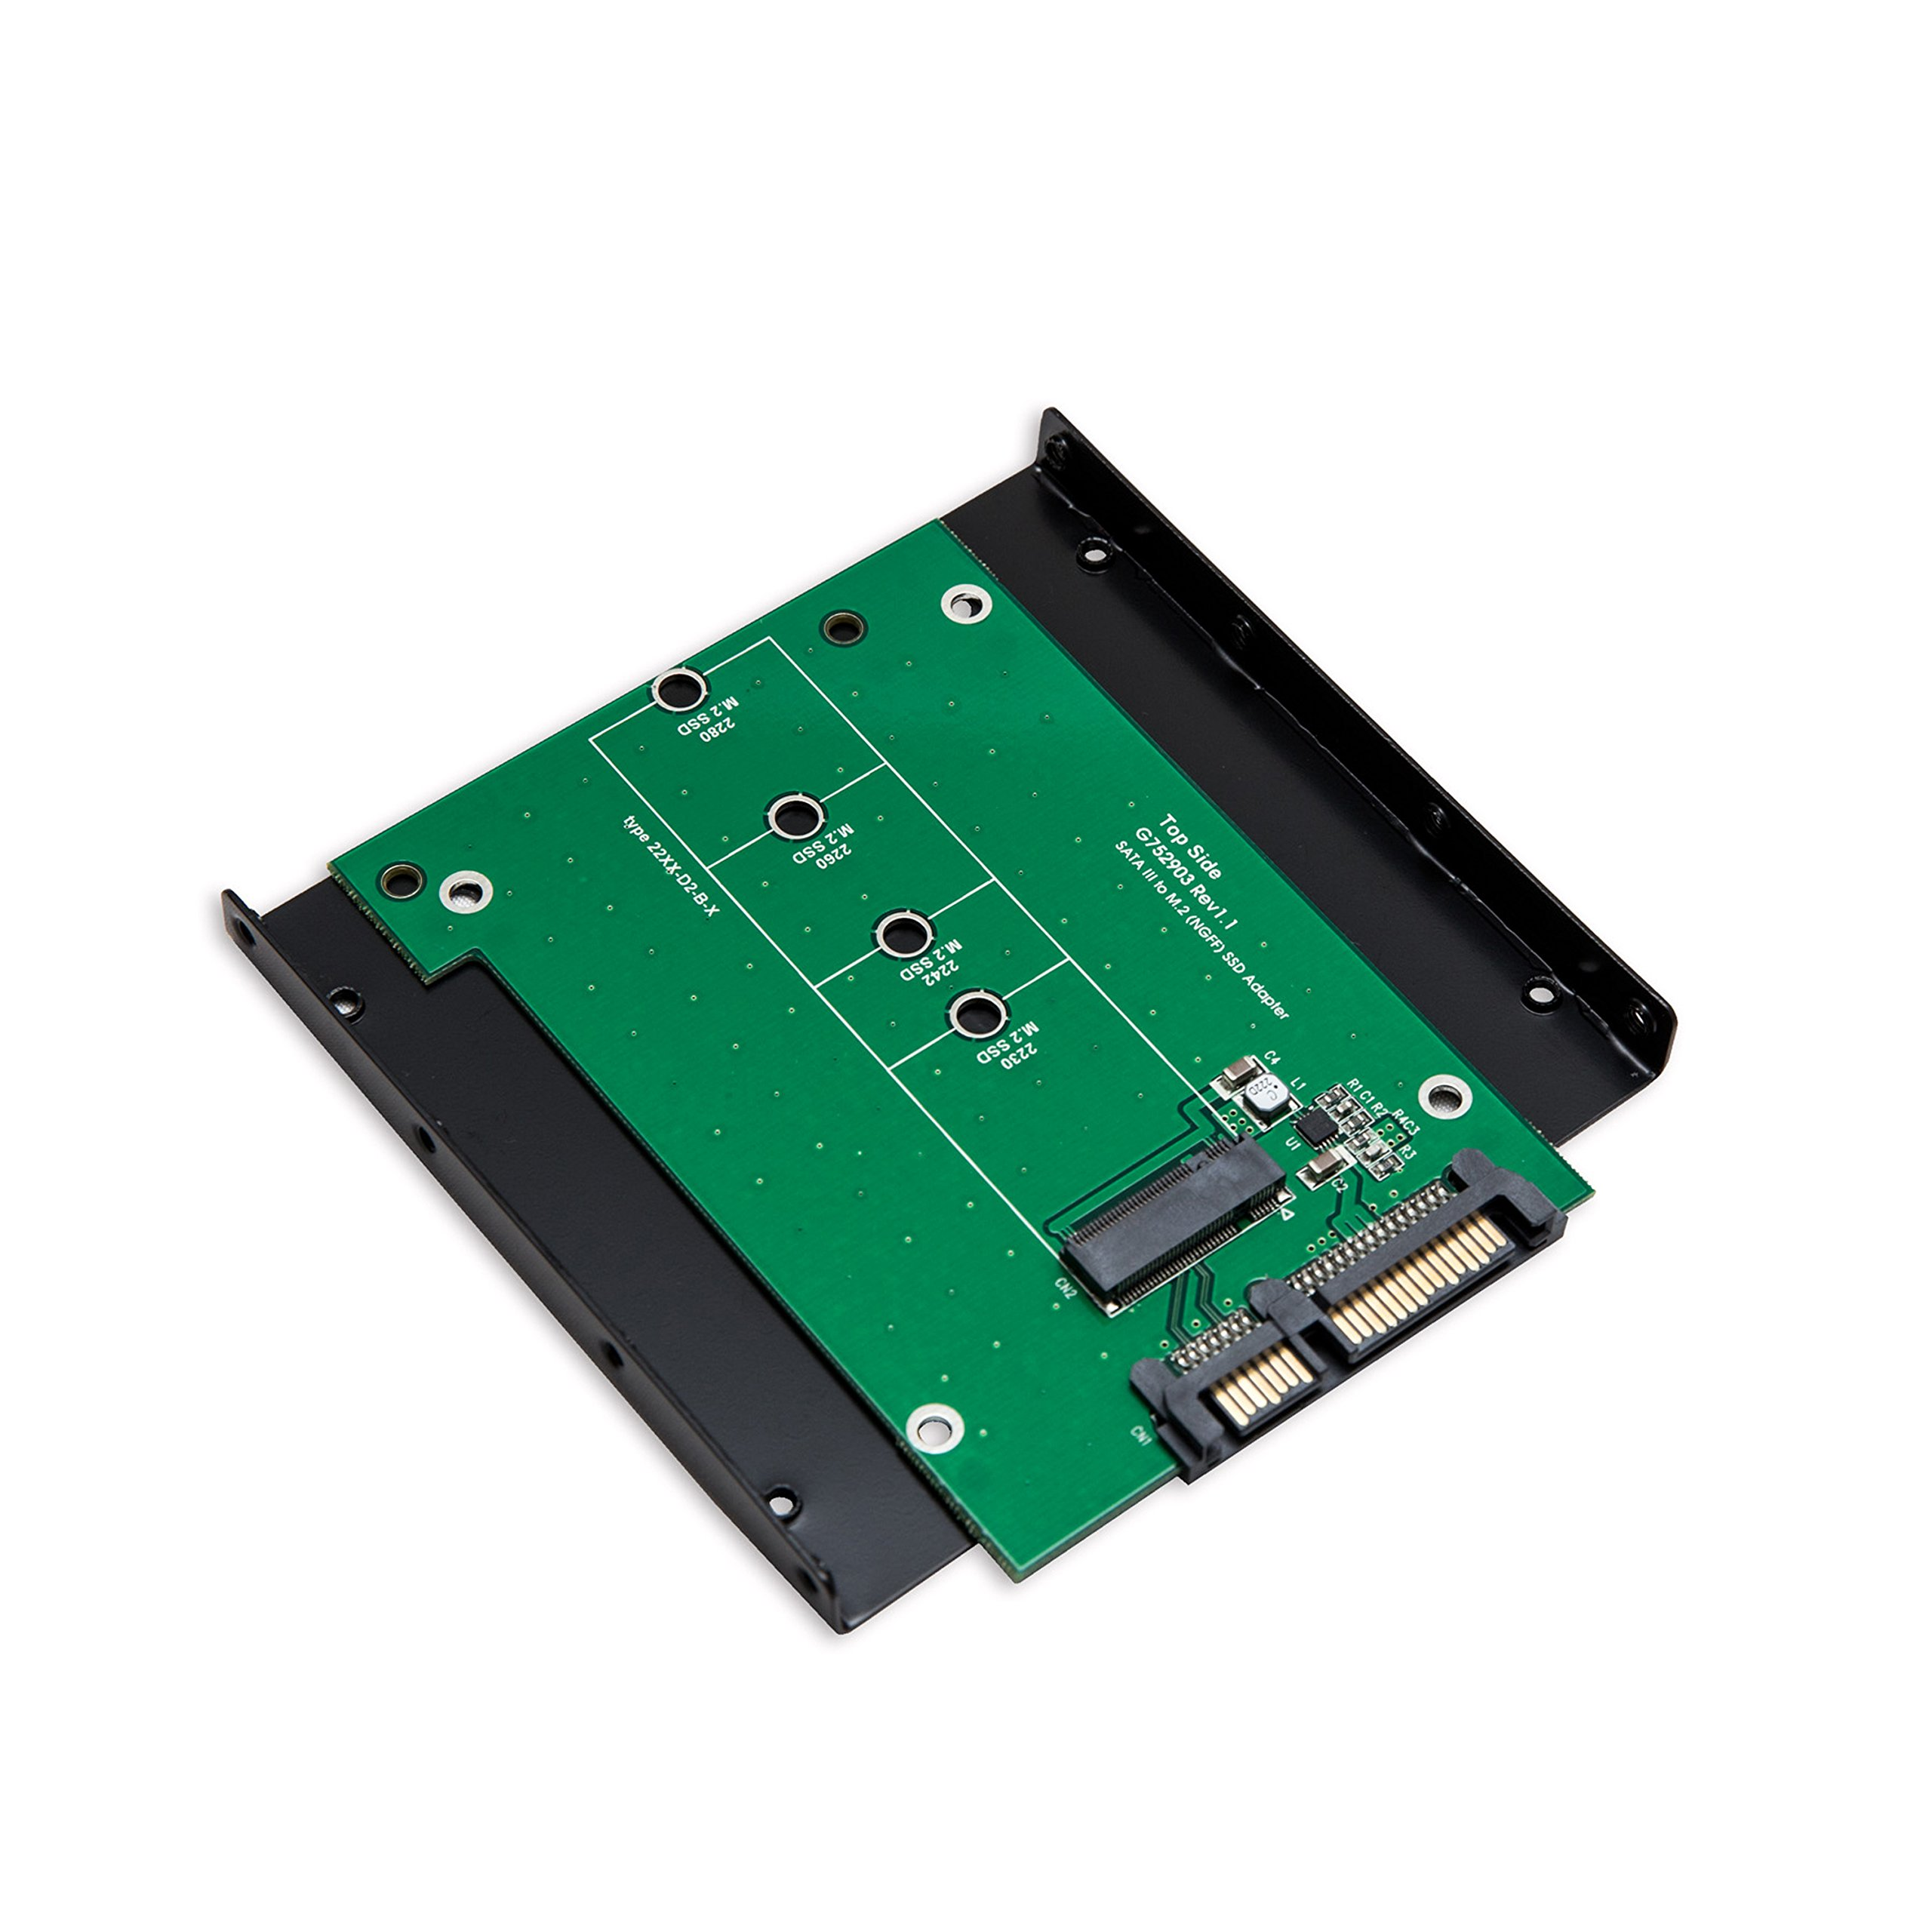 Syba SY-ADA40086 M.2 NGFF SSD to High Speed SATA III 6GB/s Board Adapter with 3.5'' Drive Bracket by Syba